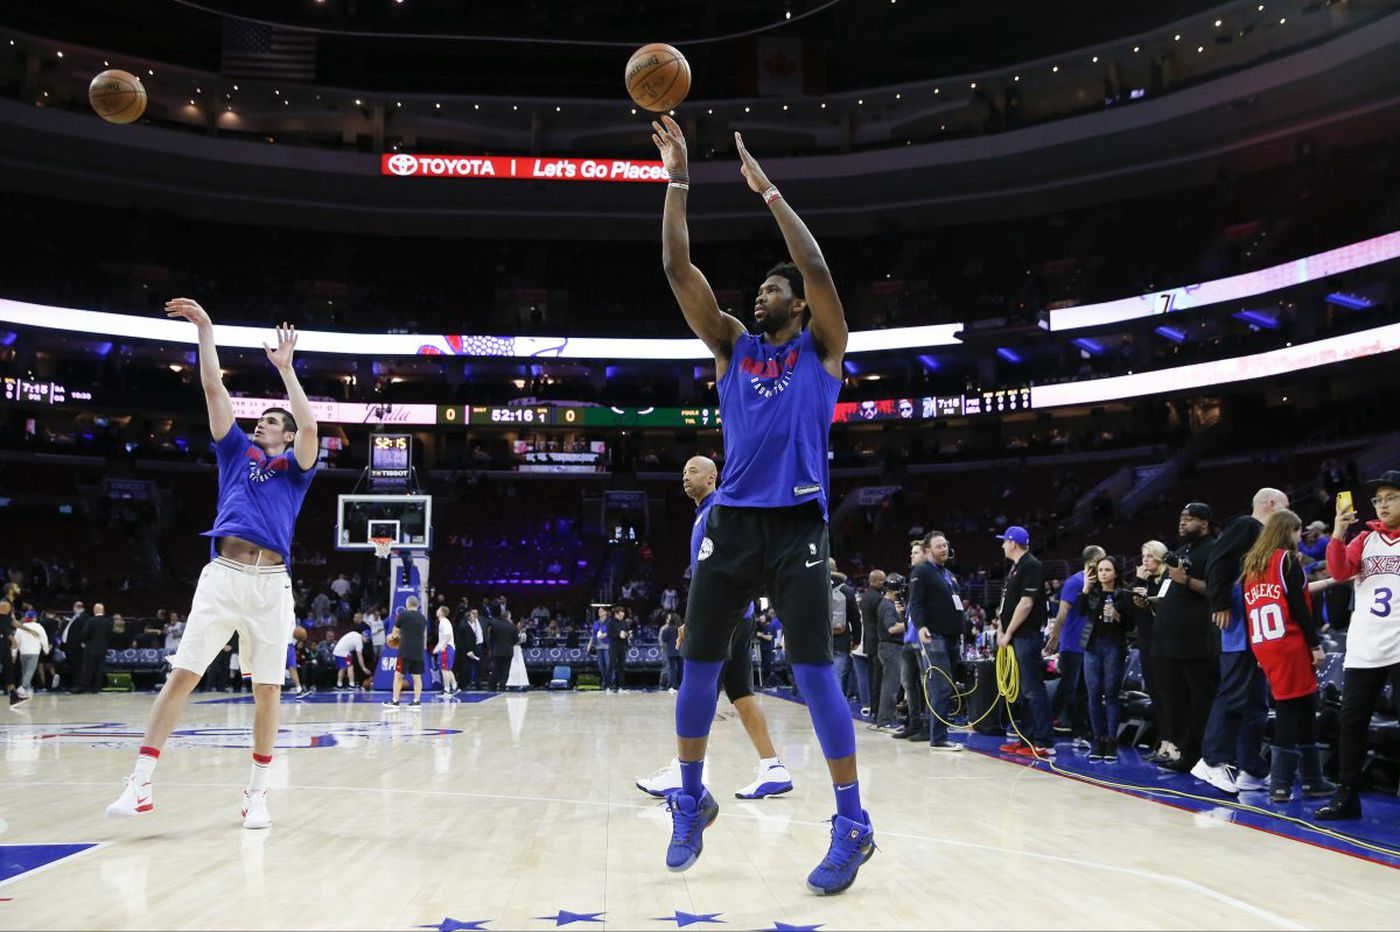 Sixers-Heat observations: Joel Embiid's absence, three-point misses, Dwyane Wade's dominance